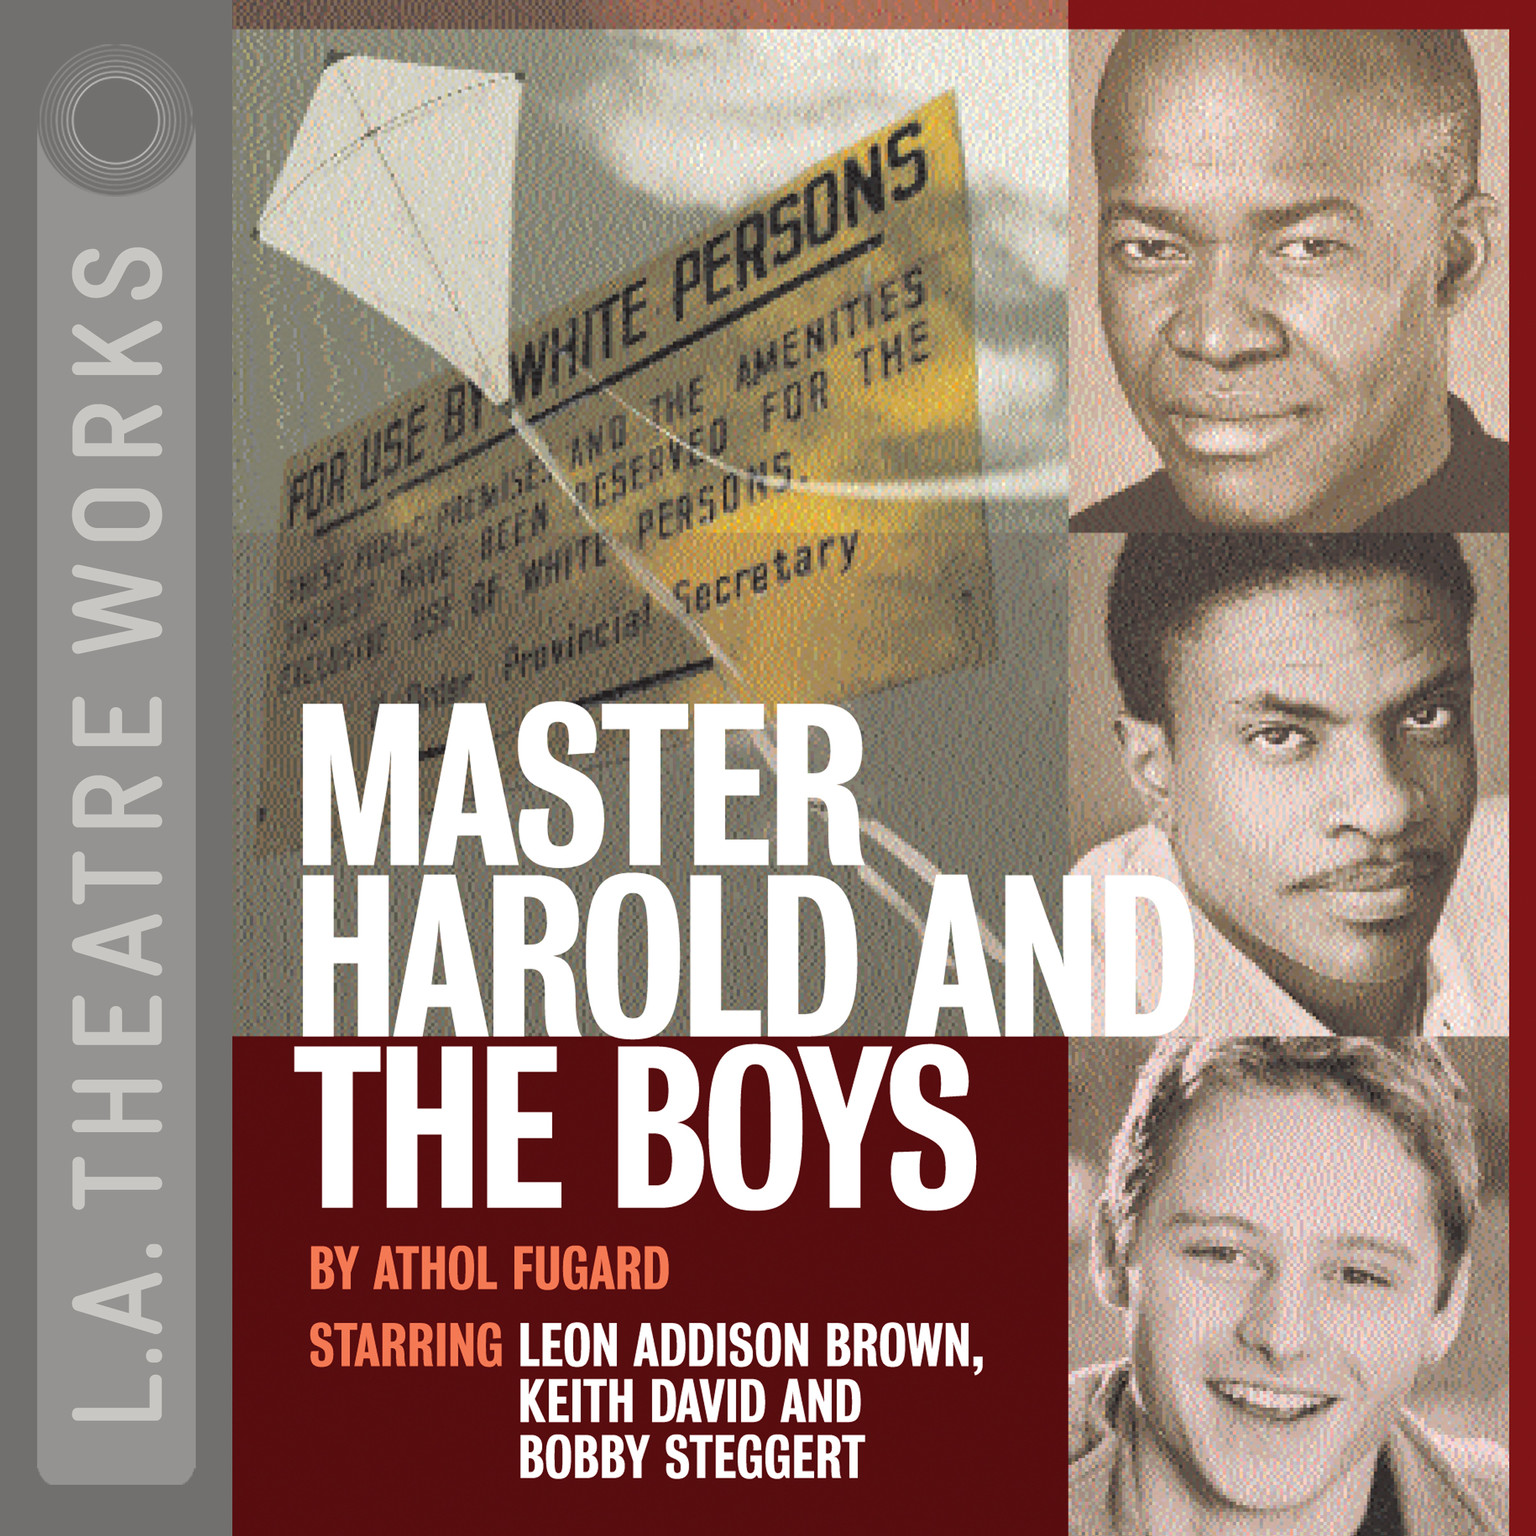 an analysis of the character of hally in master harold and the boys by athol fugard